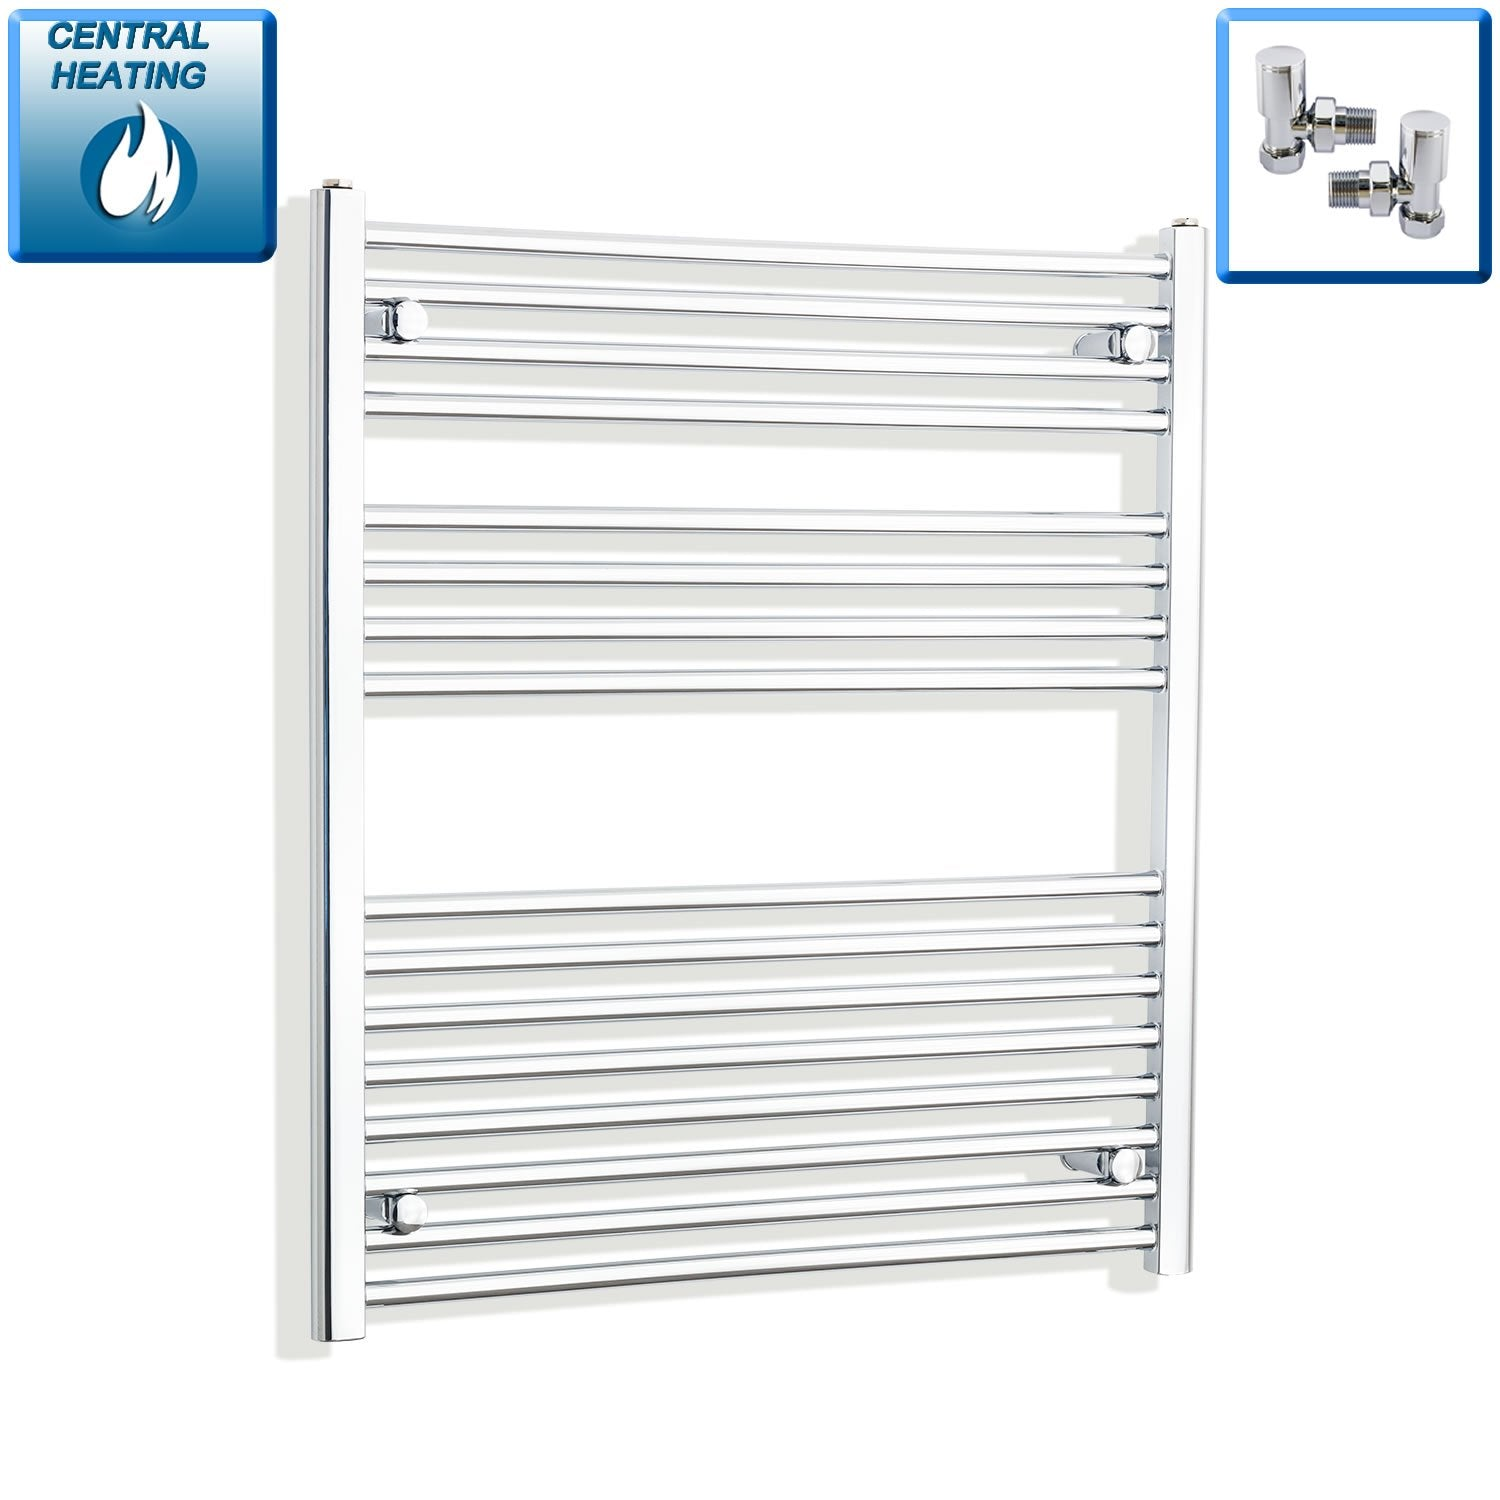 800mm Wide 900mm High Flat Chrome Heated Towel Rail Radiator HTR,With Angled Valve